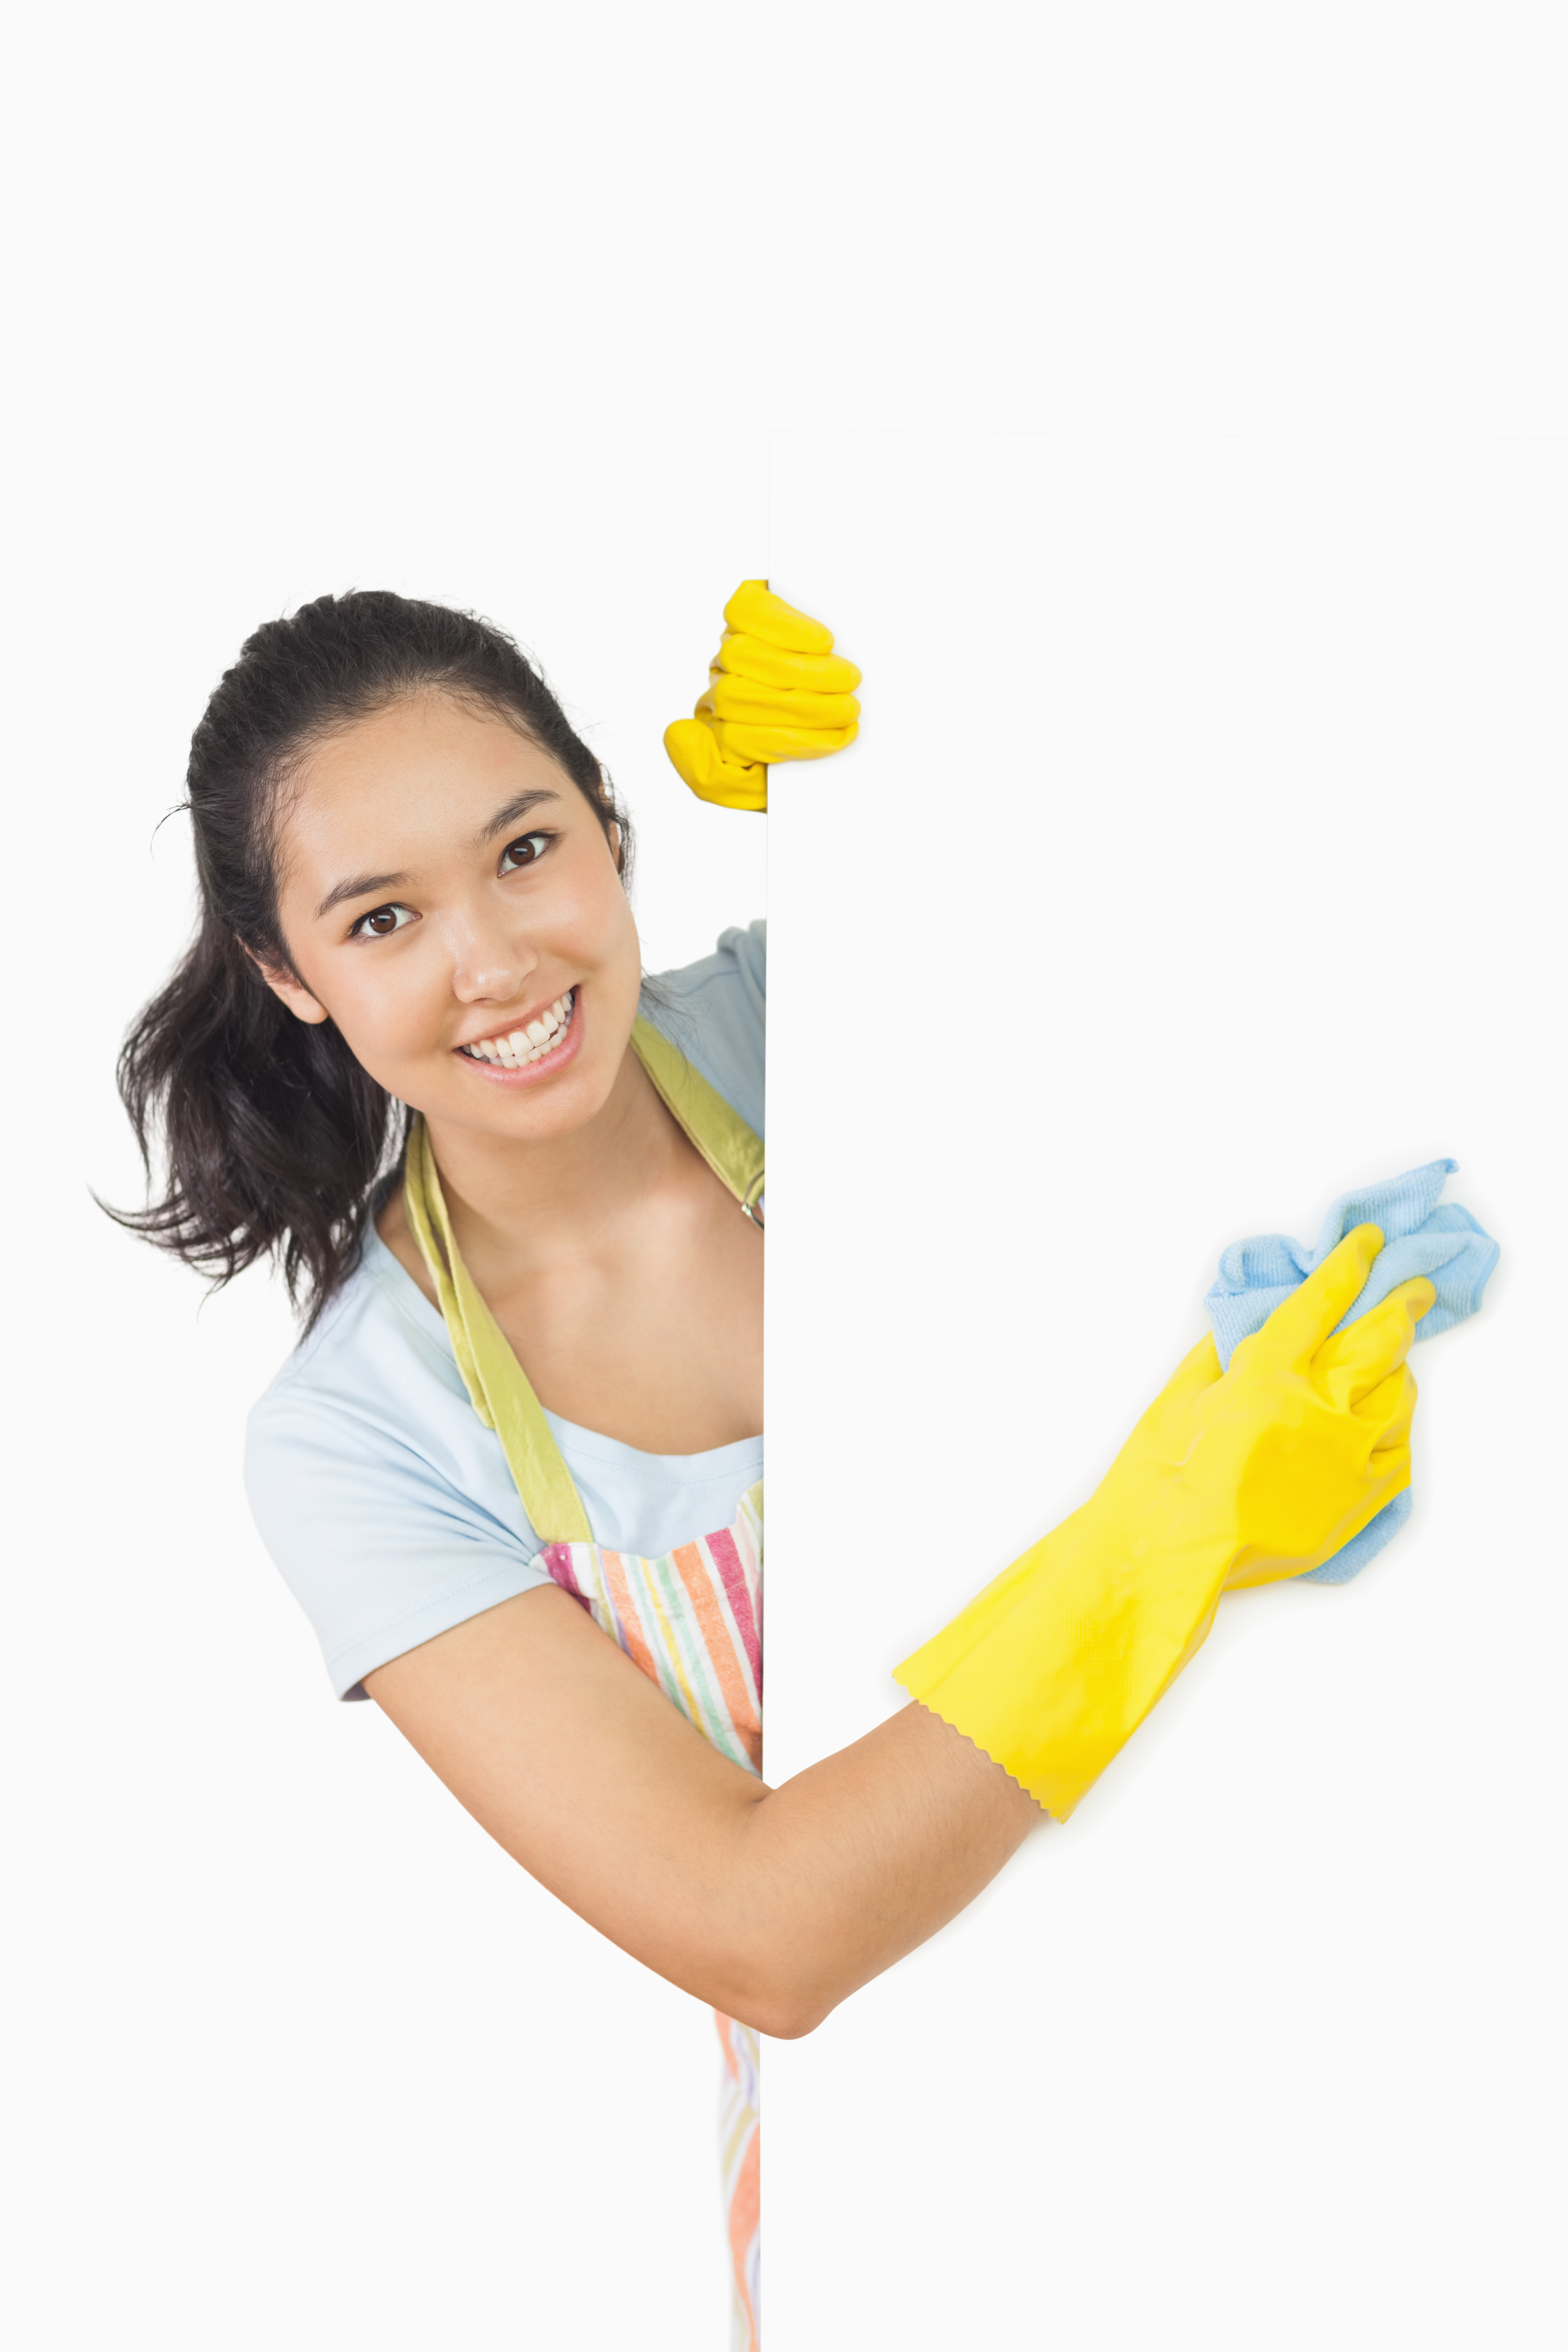 Smiling woman in apron and rubber gloves cleaning white surface